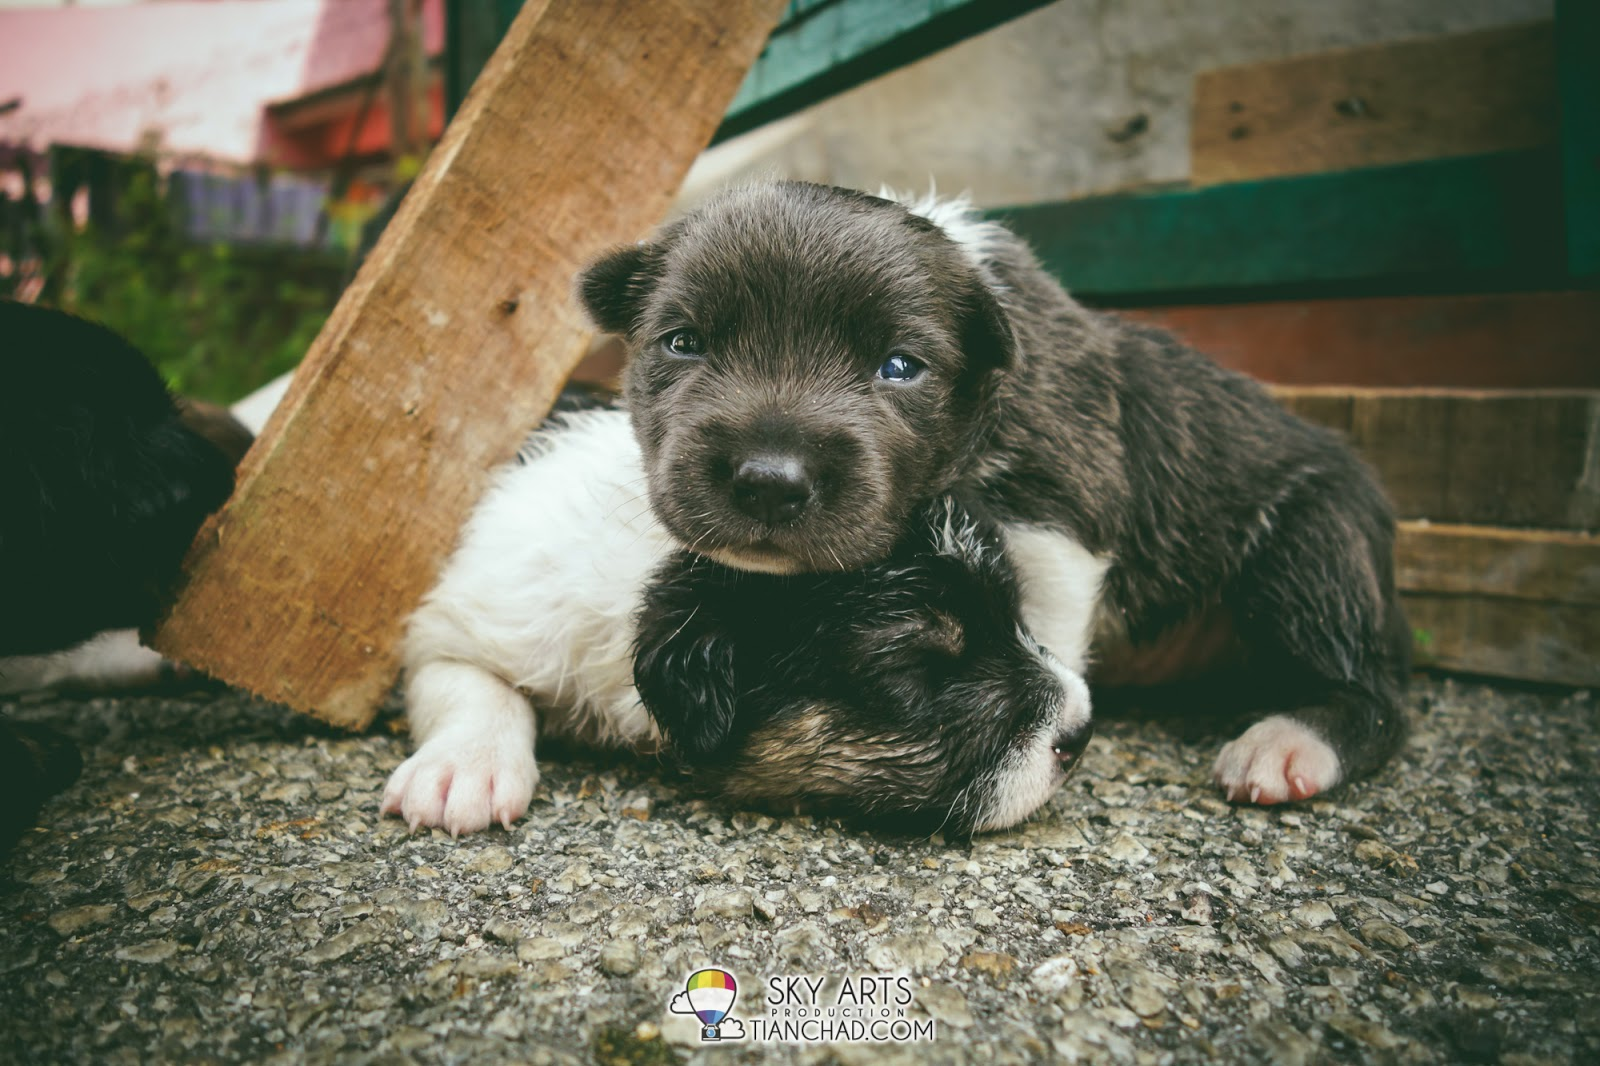 cute puppies sleeping crawling looking for mom's milk